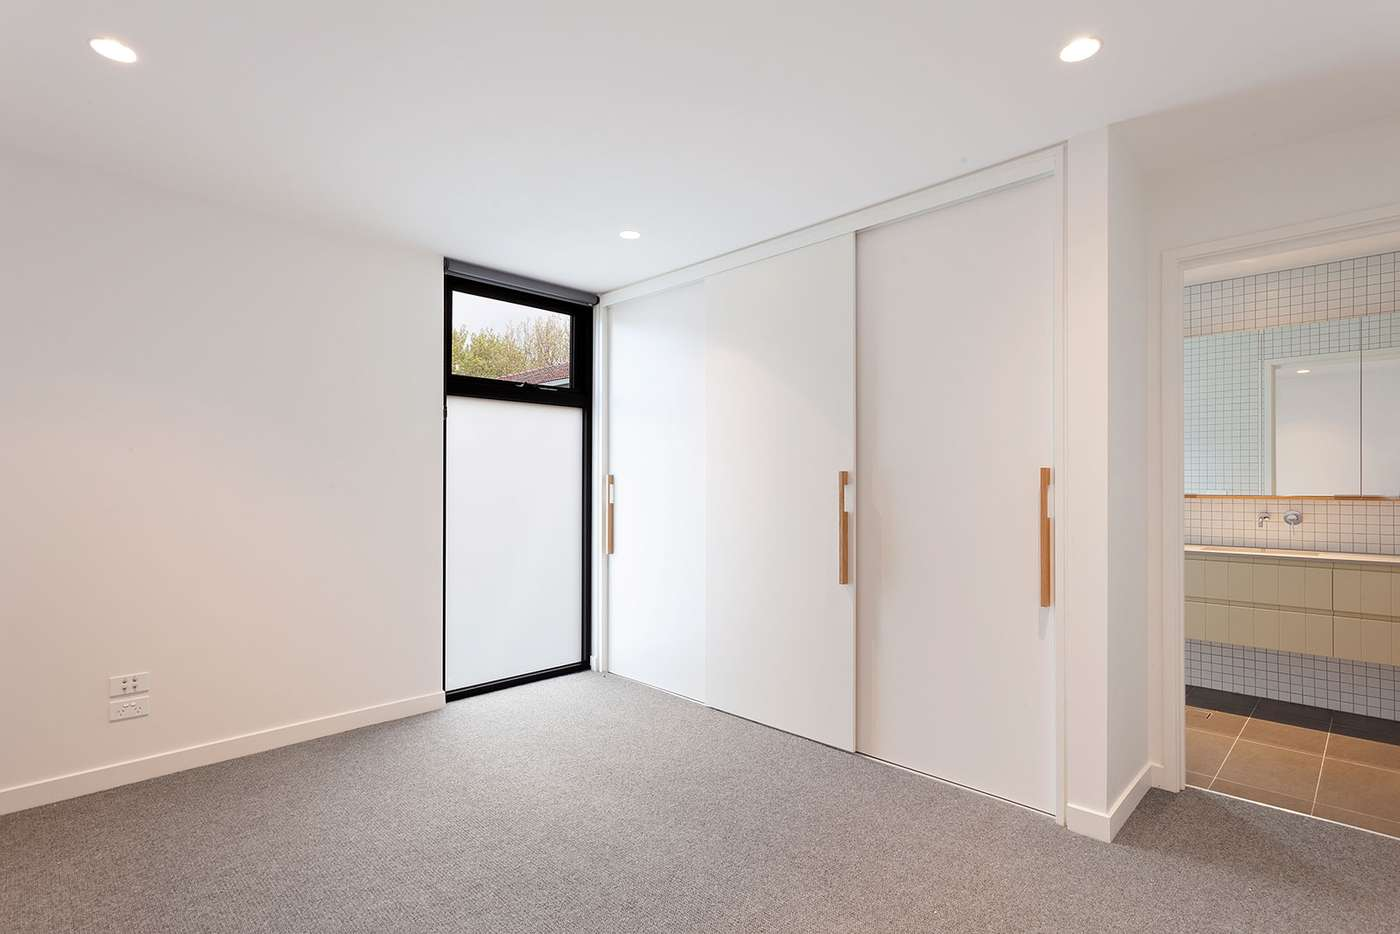 Sixth view of Homely townhouse listing, 7/2 Meredith Street, Elwood VIC 3184